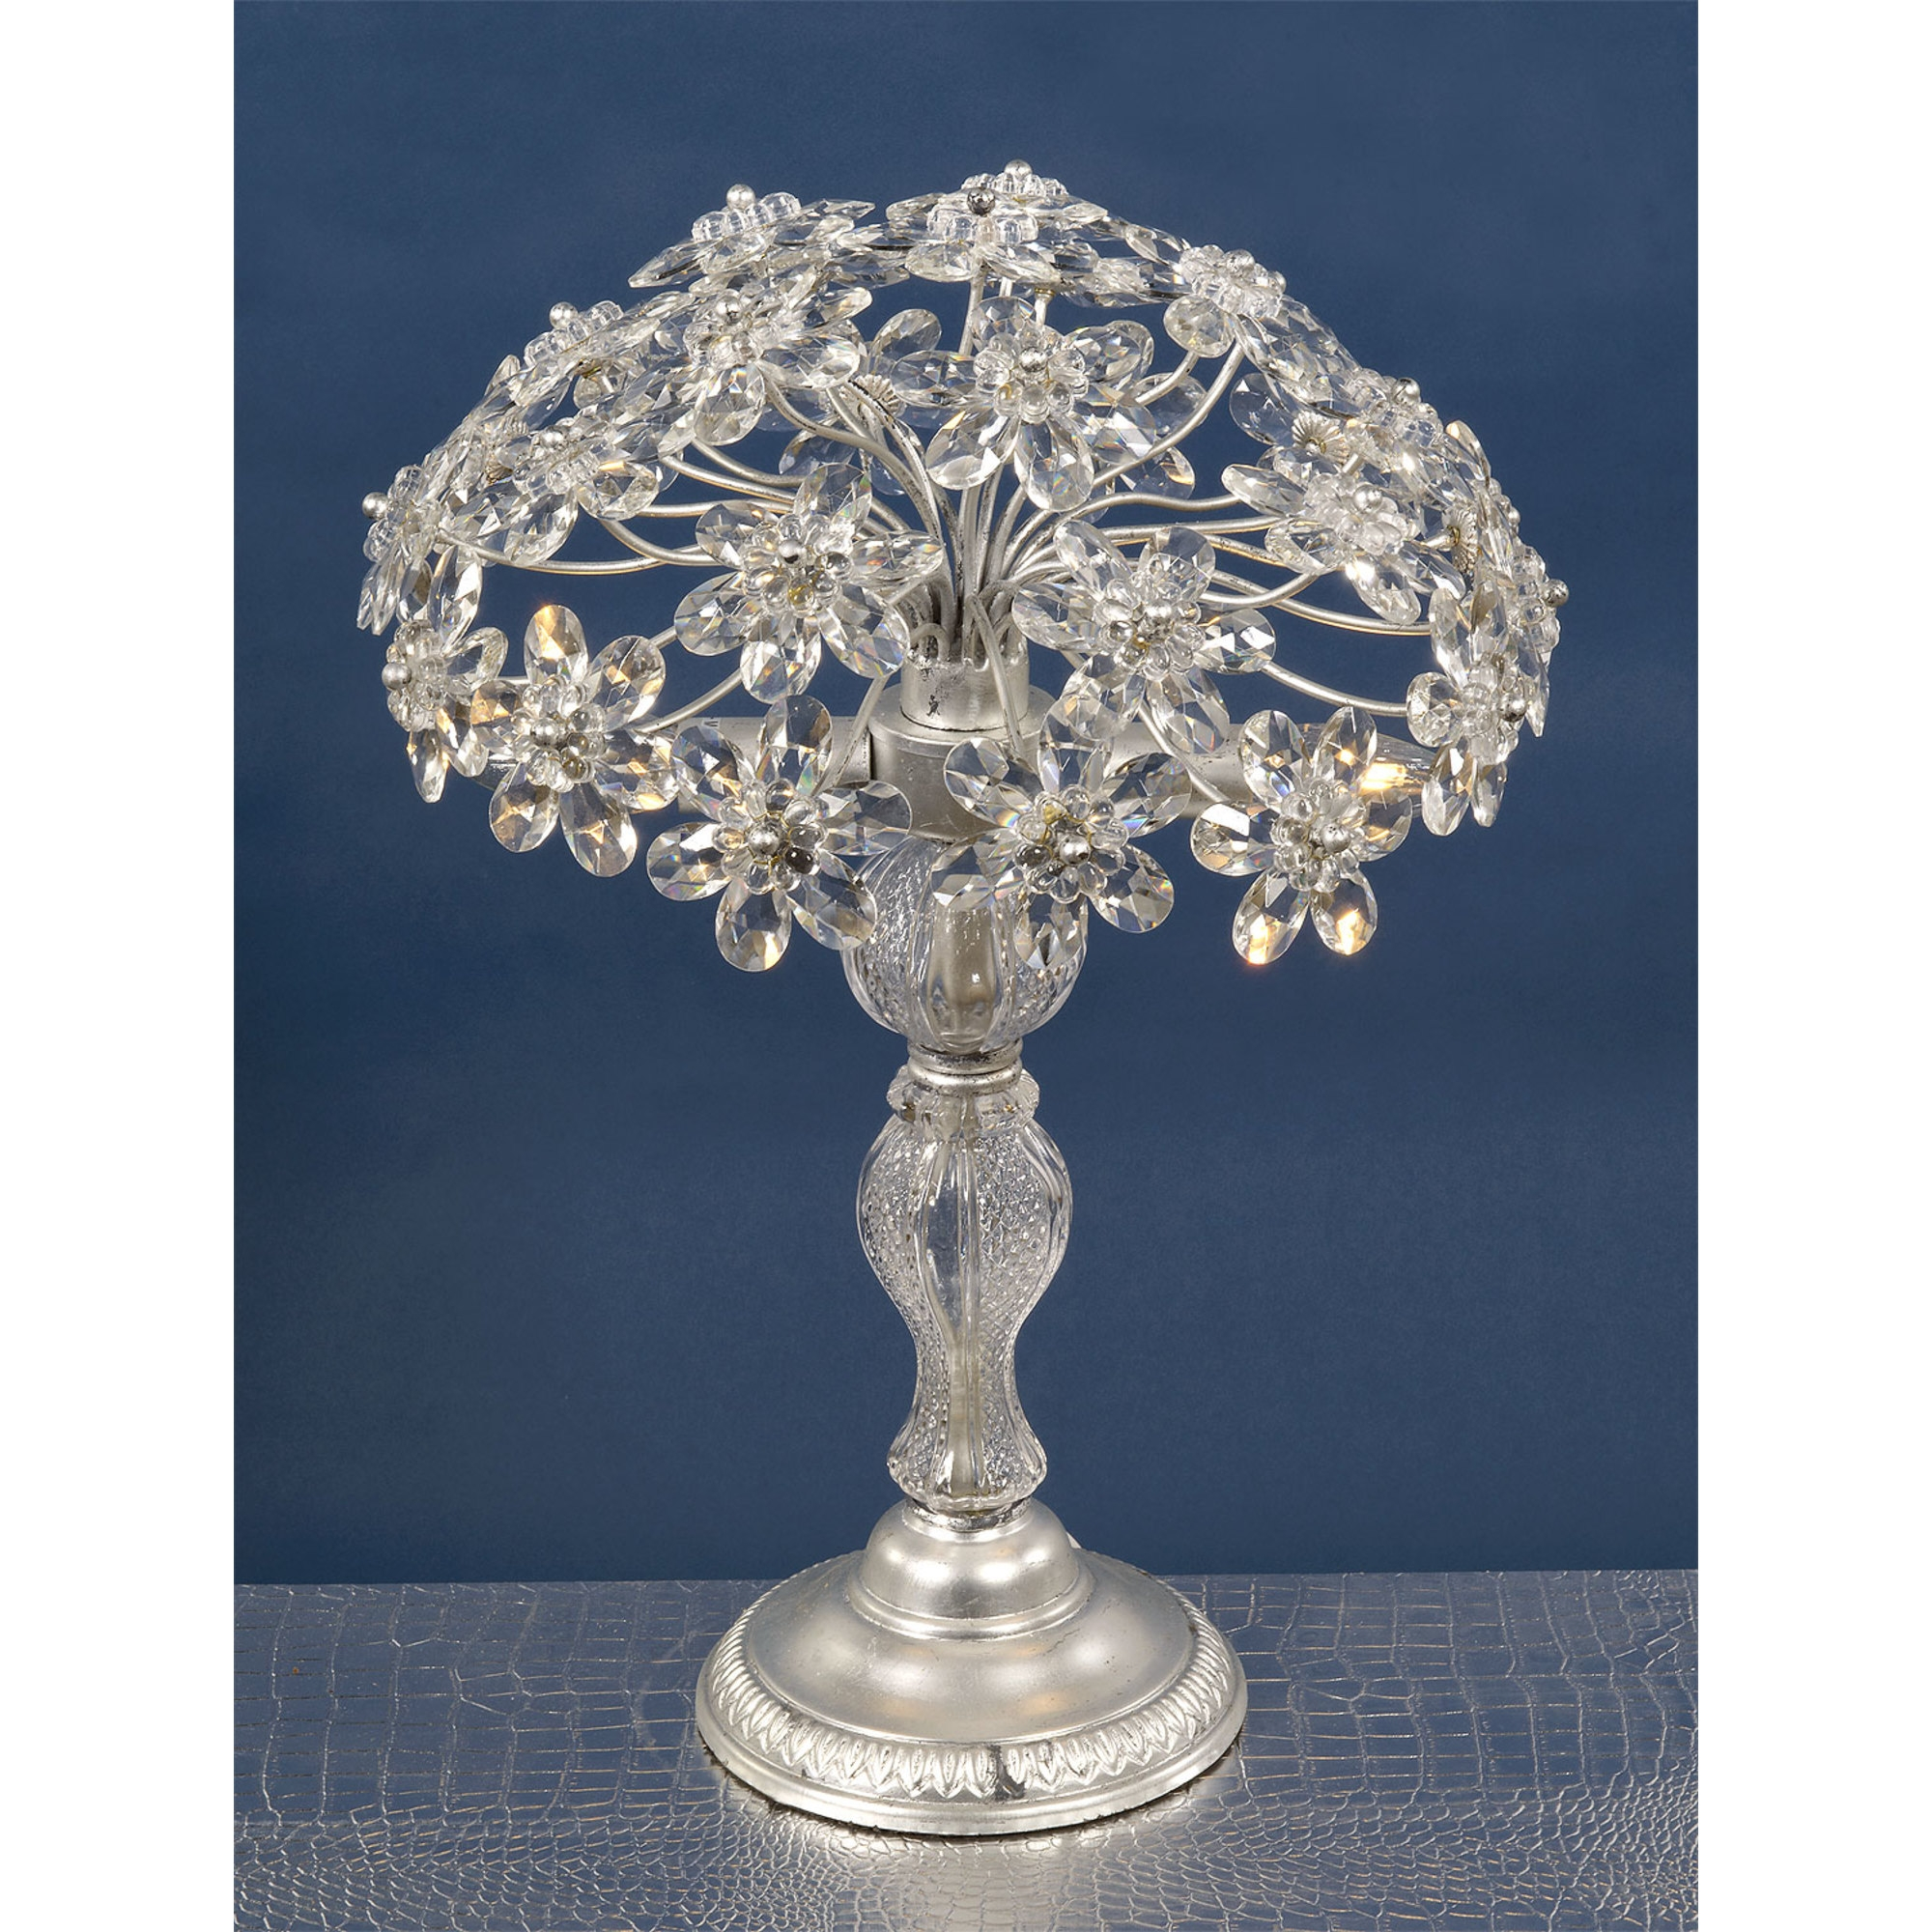 Flower Crystal Table Lamp - Silver and Clear